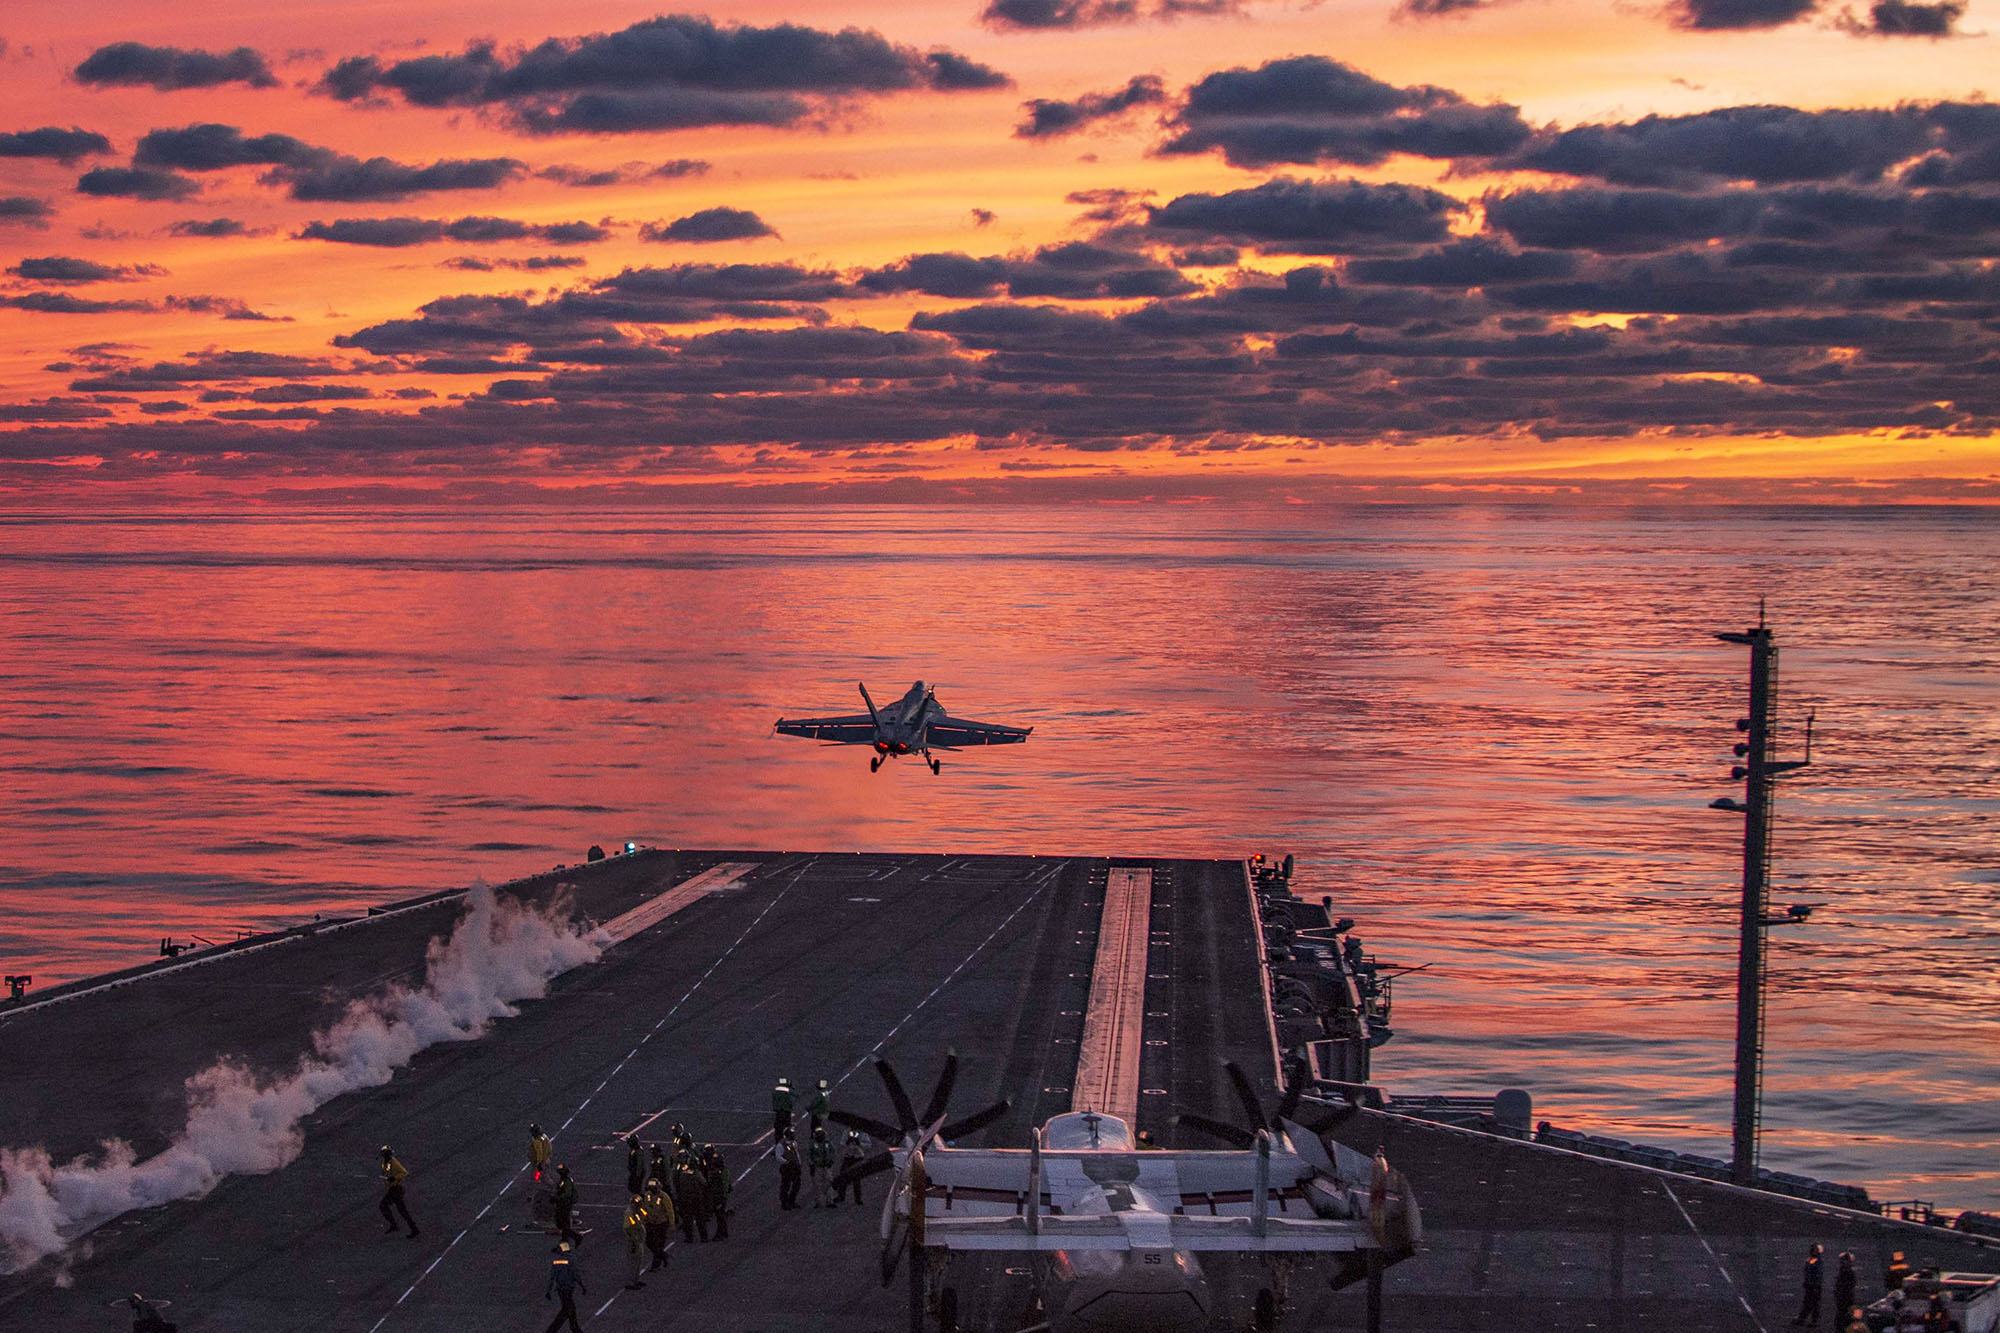 An F/A-18E Super Hornet launches from the flight deck aboard the Nimitz-class aircraft carrier USS Dwight D. Eisenhower (CVN 69) on Oct. 1, 2020, in the Atlantic Ocean. (MC3 Cameron Pinske/Navy)